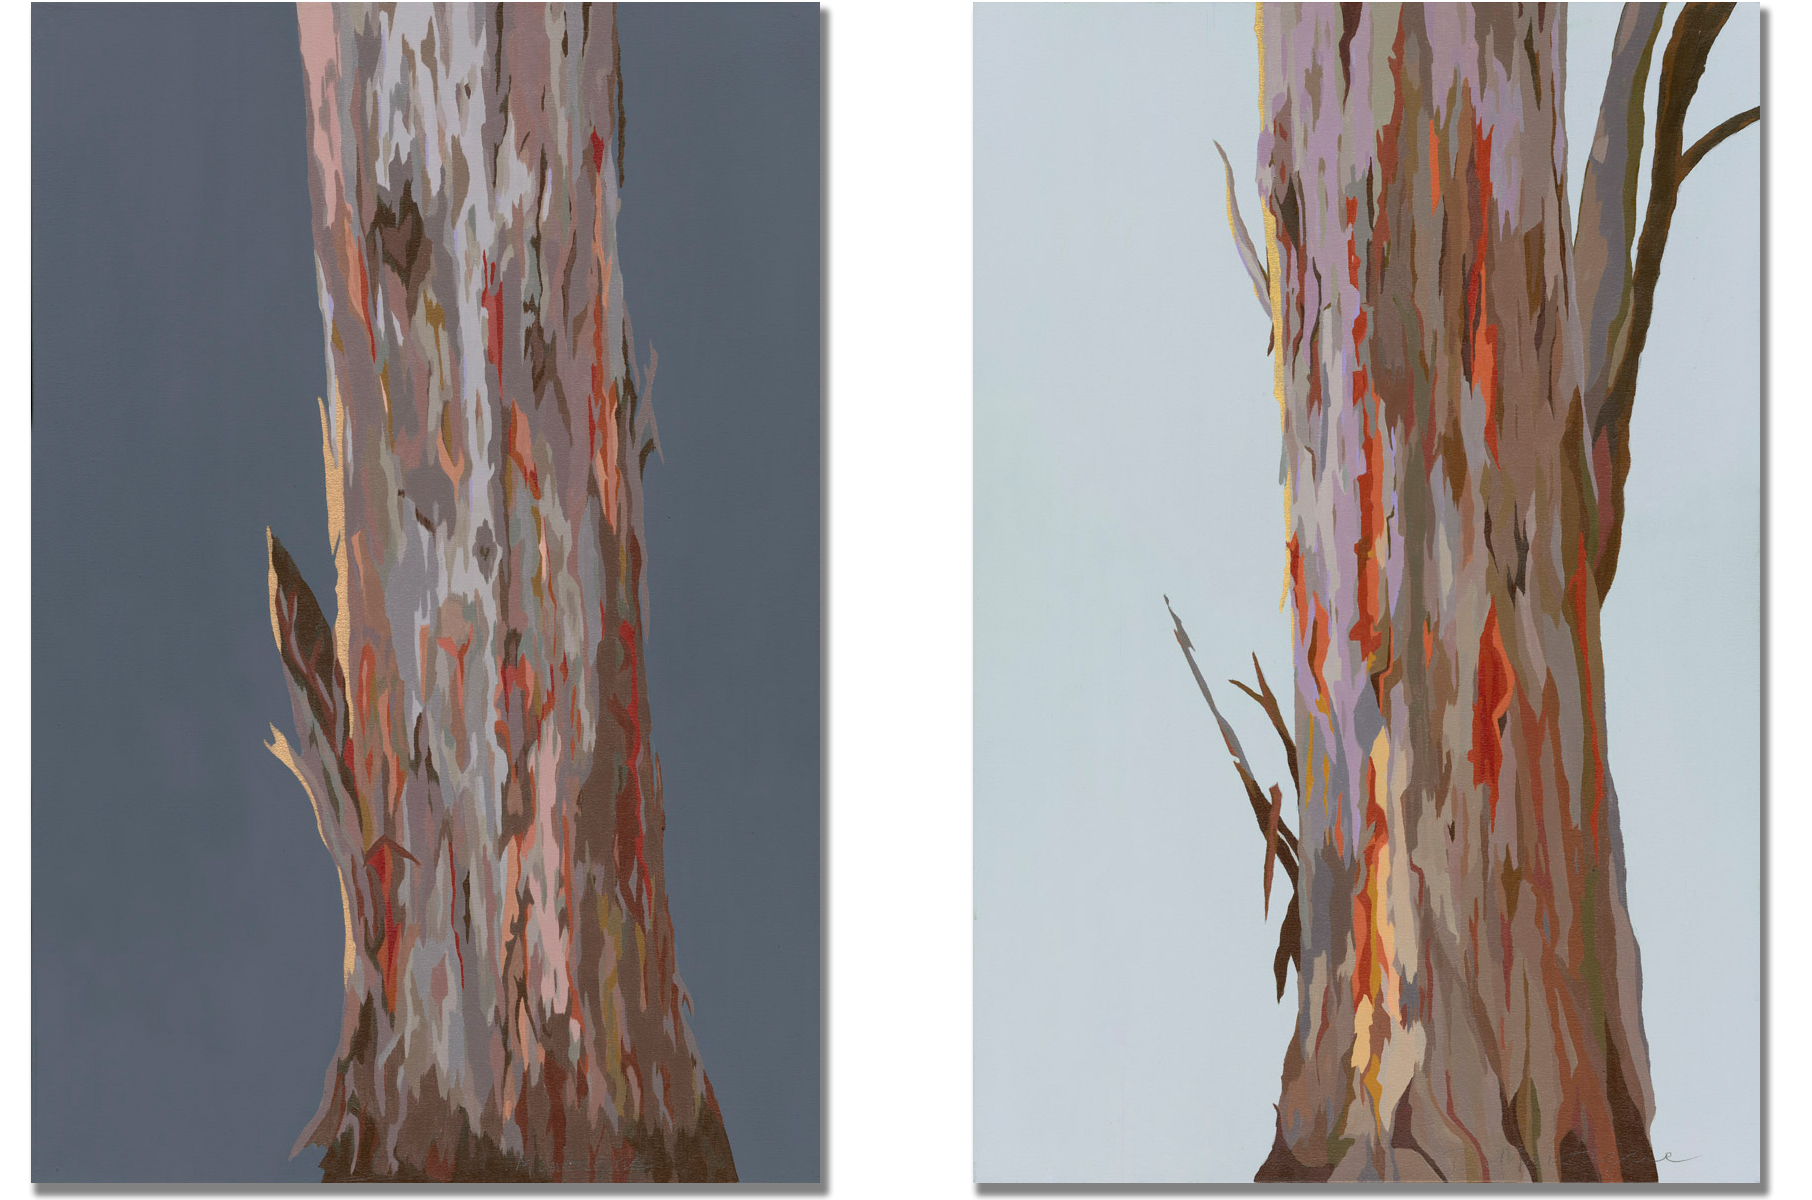 Natives by Dawn I and II ,  Limited Edition of 10 signed canvas Prints,  © Ida Montague 90 x 60cm. ENQUIRE   Montague's second native tree study looks at the subject in first light;where bark has shed from the majestic Eucalyptus and nature's colours reflect that cooler, calmer moment before the Australian landscape awakens. Capturing the almost iridescent textures at this fleeting instant canvas prints are now available.